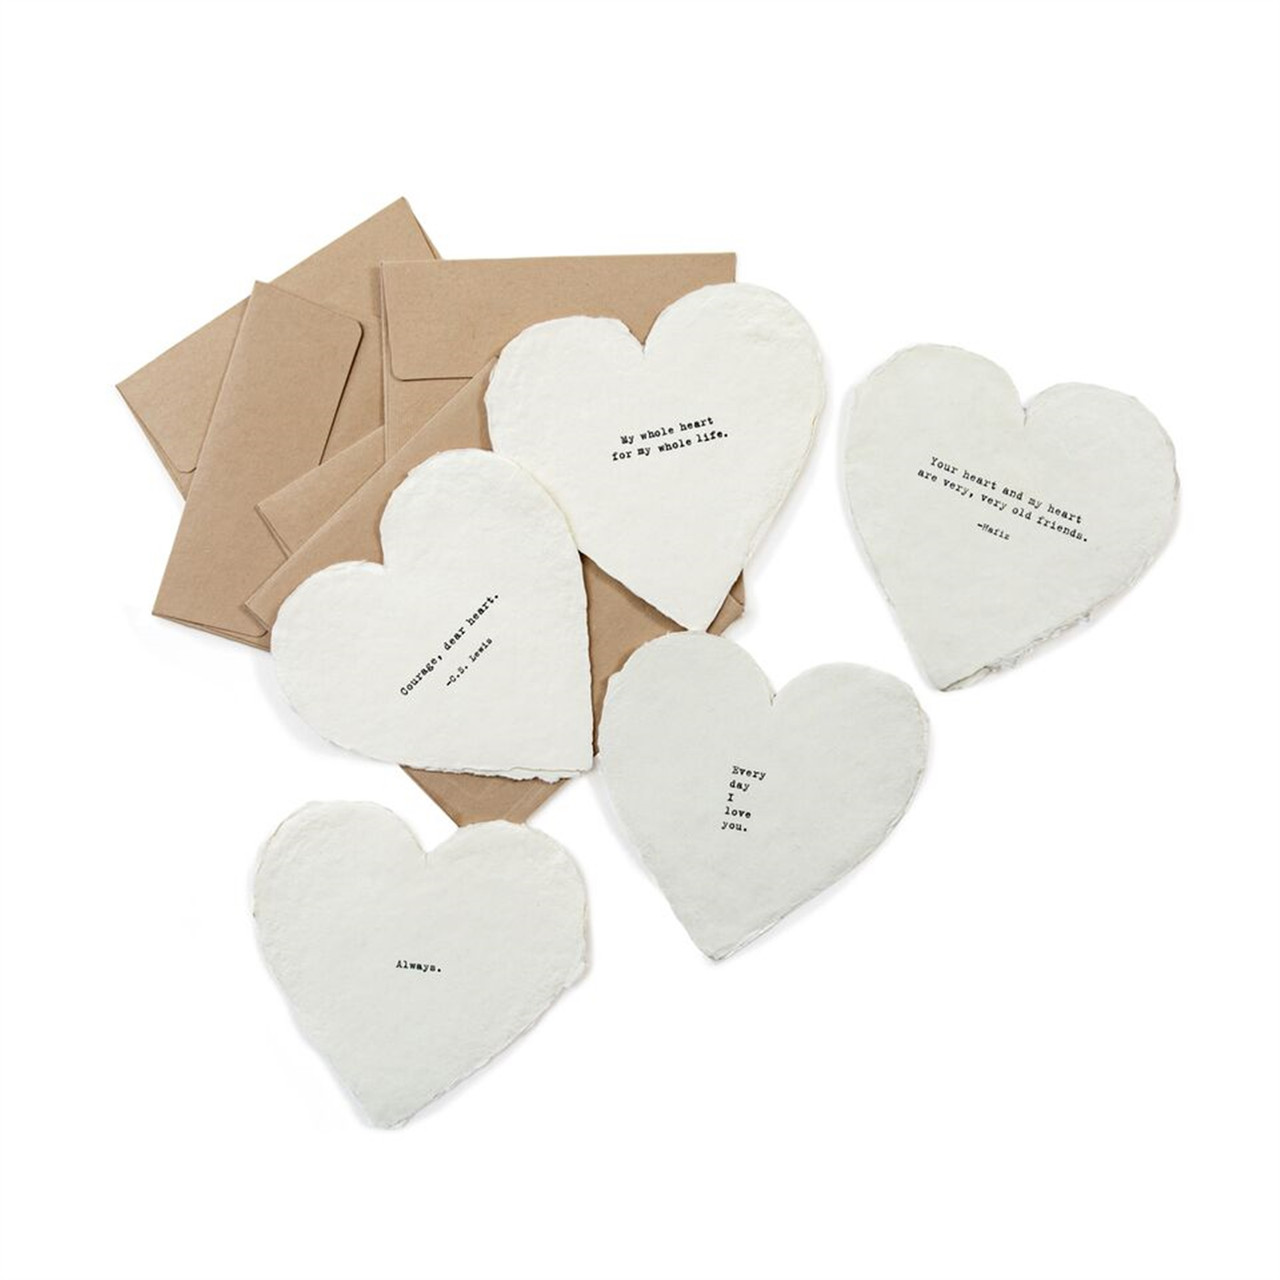 Pink heart gift tags scalloped edge Pack of 100 seconds UV fading on top cards